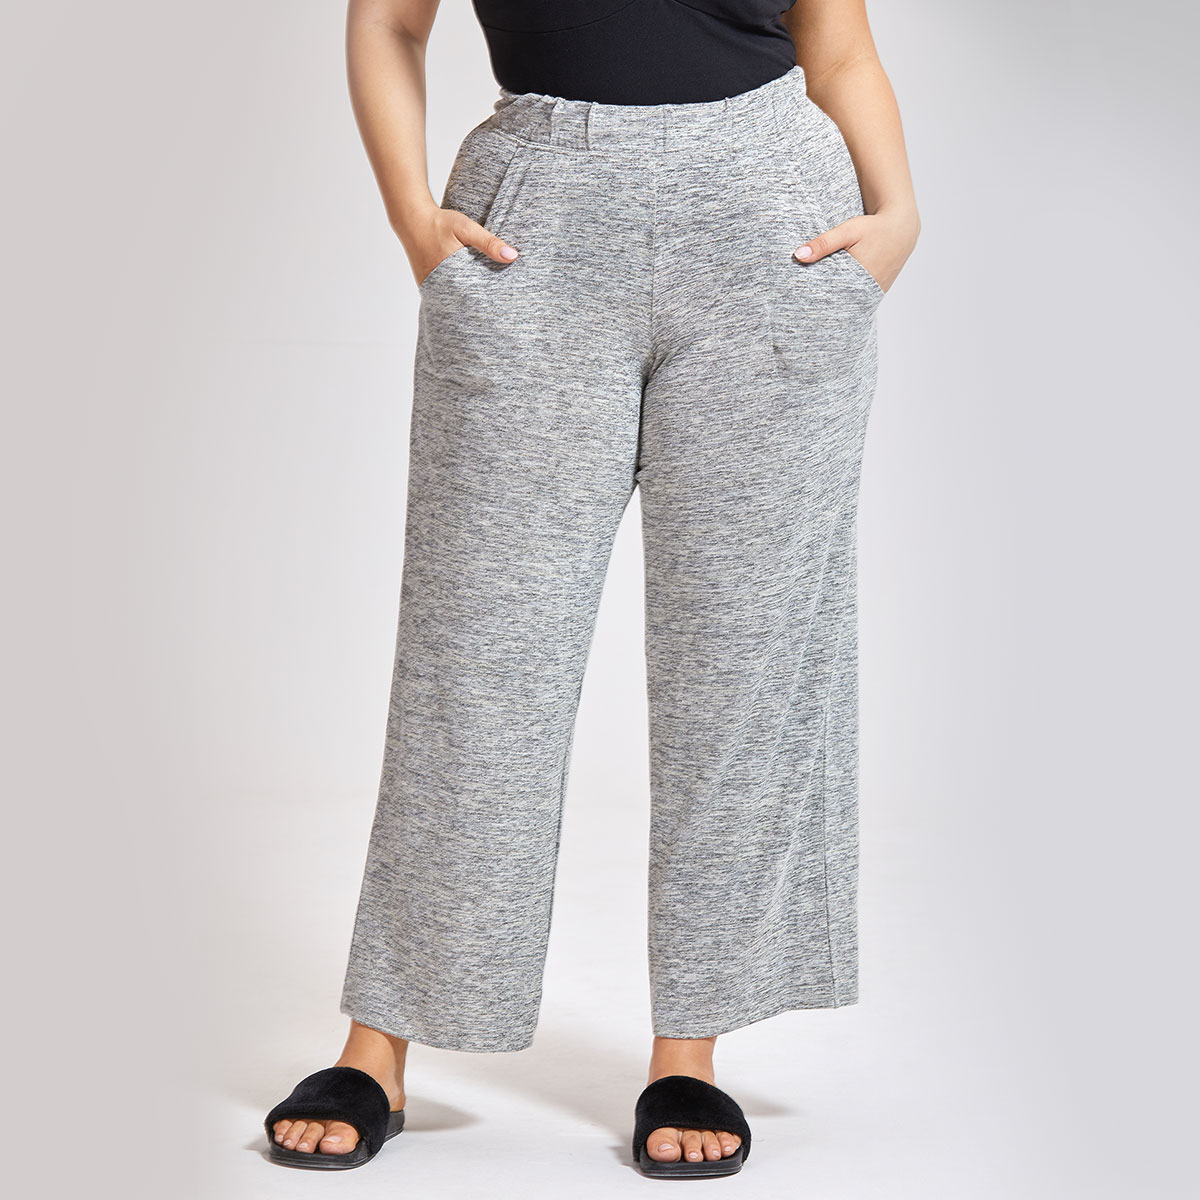 Women's Pajama Wide Leg Sleep Pant Sleepwear Loose Lounge Bottoms